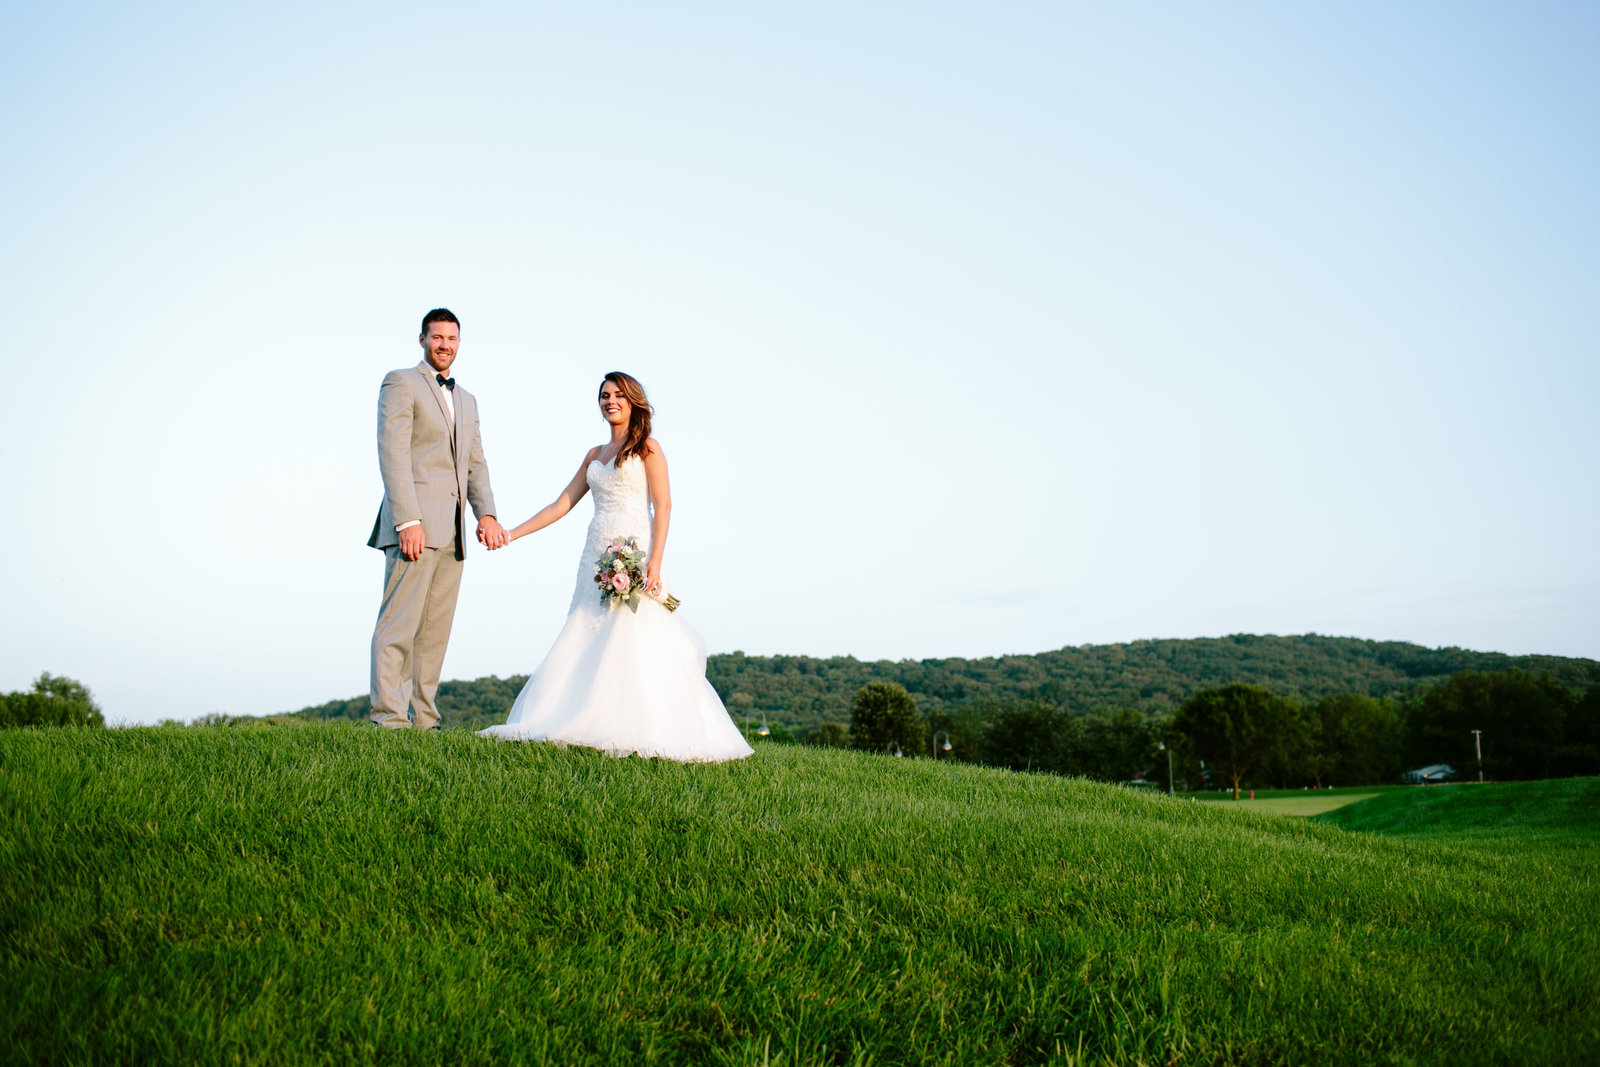 140_Black_tie_Ritz_Chase_outdoor_chaumette_silver_oaks_catholic_church_wash_u_top_of_the_rock_vineyard_country_club_st_albans